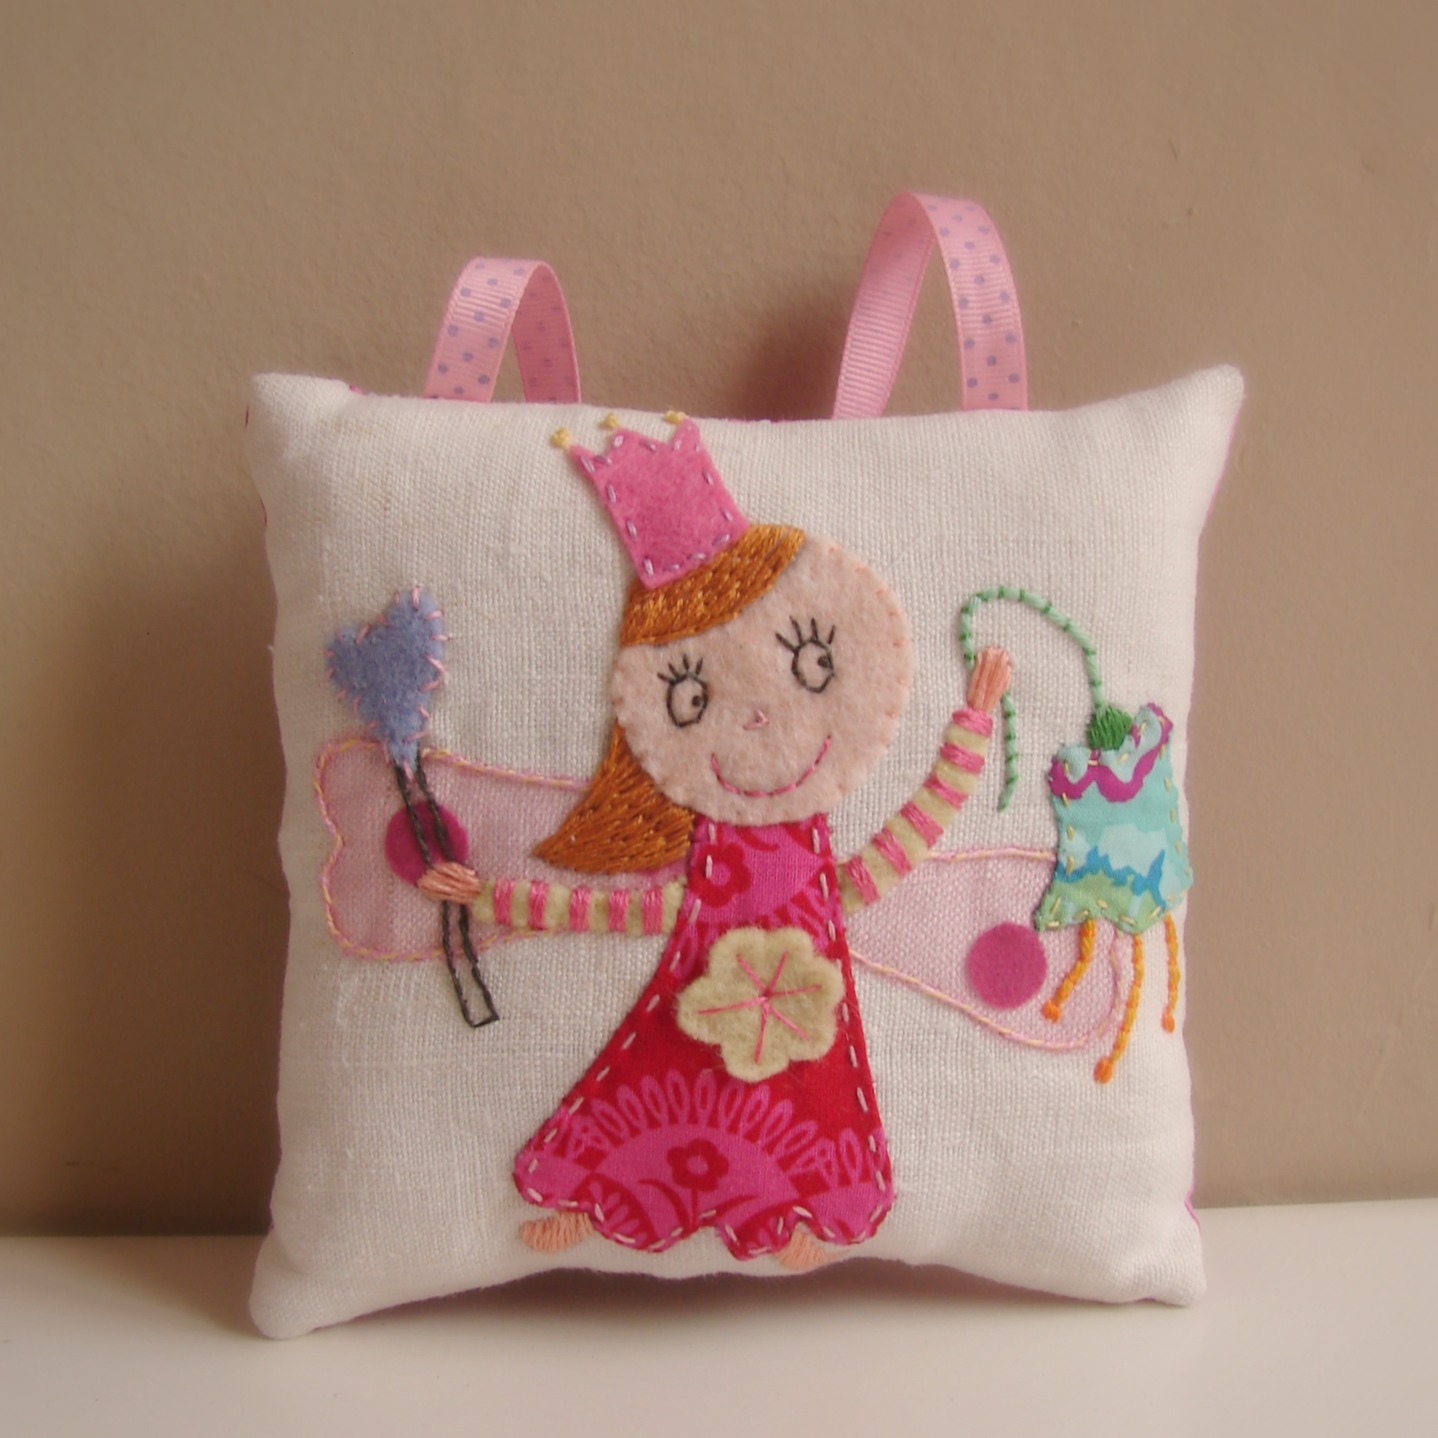 Roxy Creations: Tooth fairy pillows